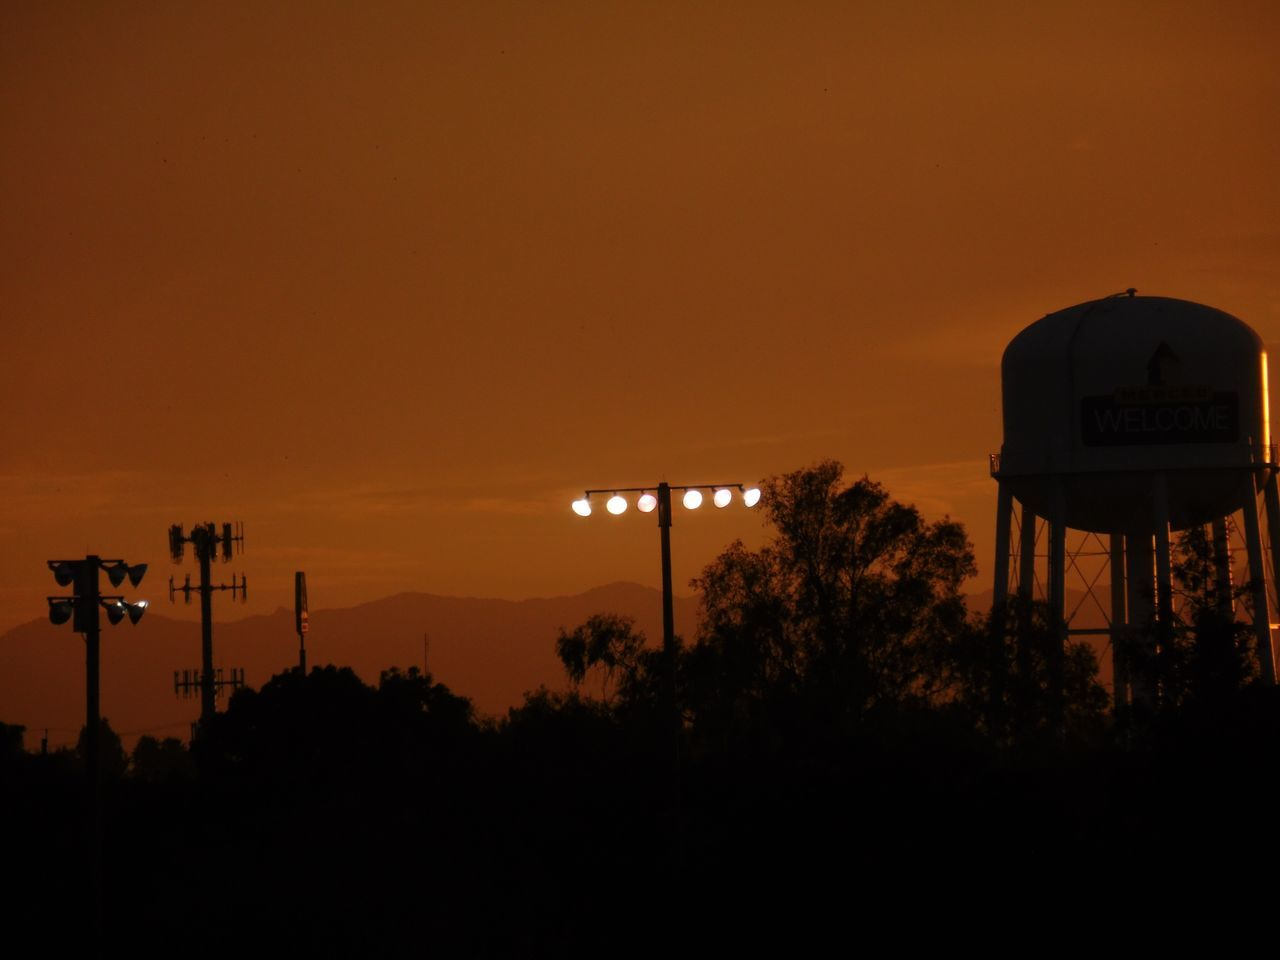 silhouette, sunset, tree, orange color, nature, beauty in nature, communication, no people, tranquility, sky, outdoors, built structure, scenics, architecture, water tower - storage tank, basketball - sport, day